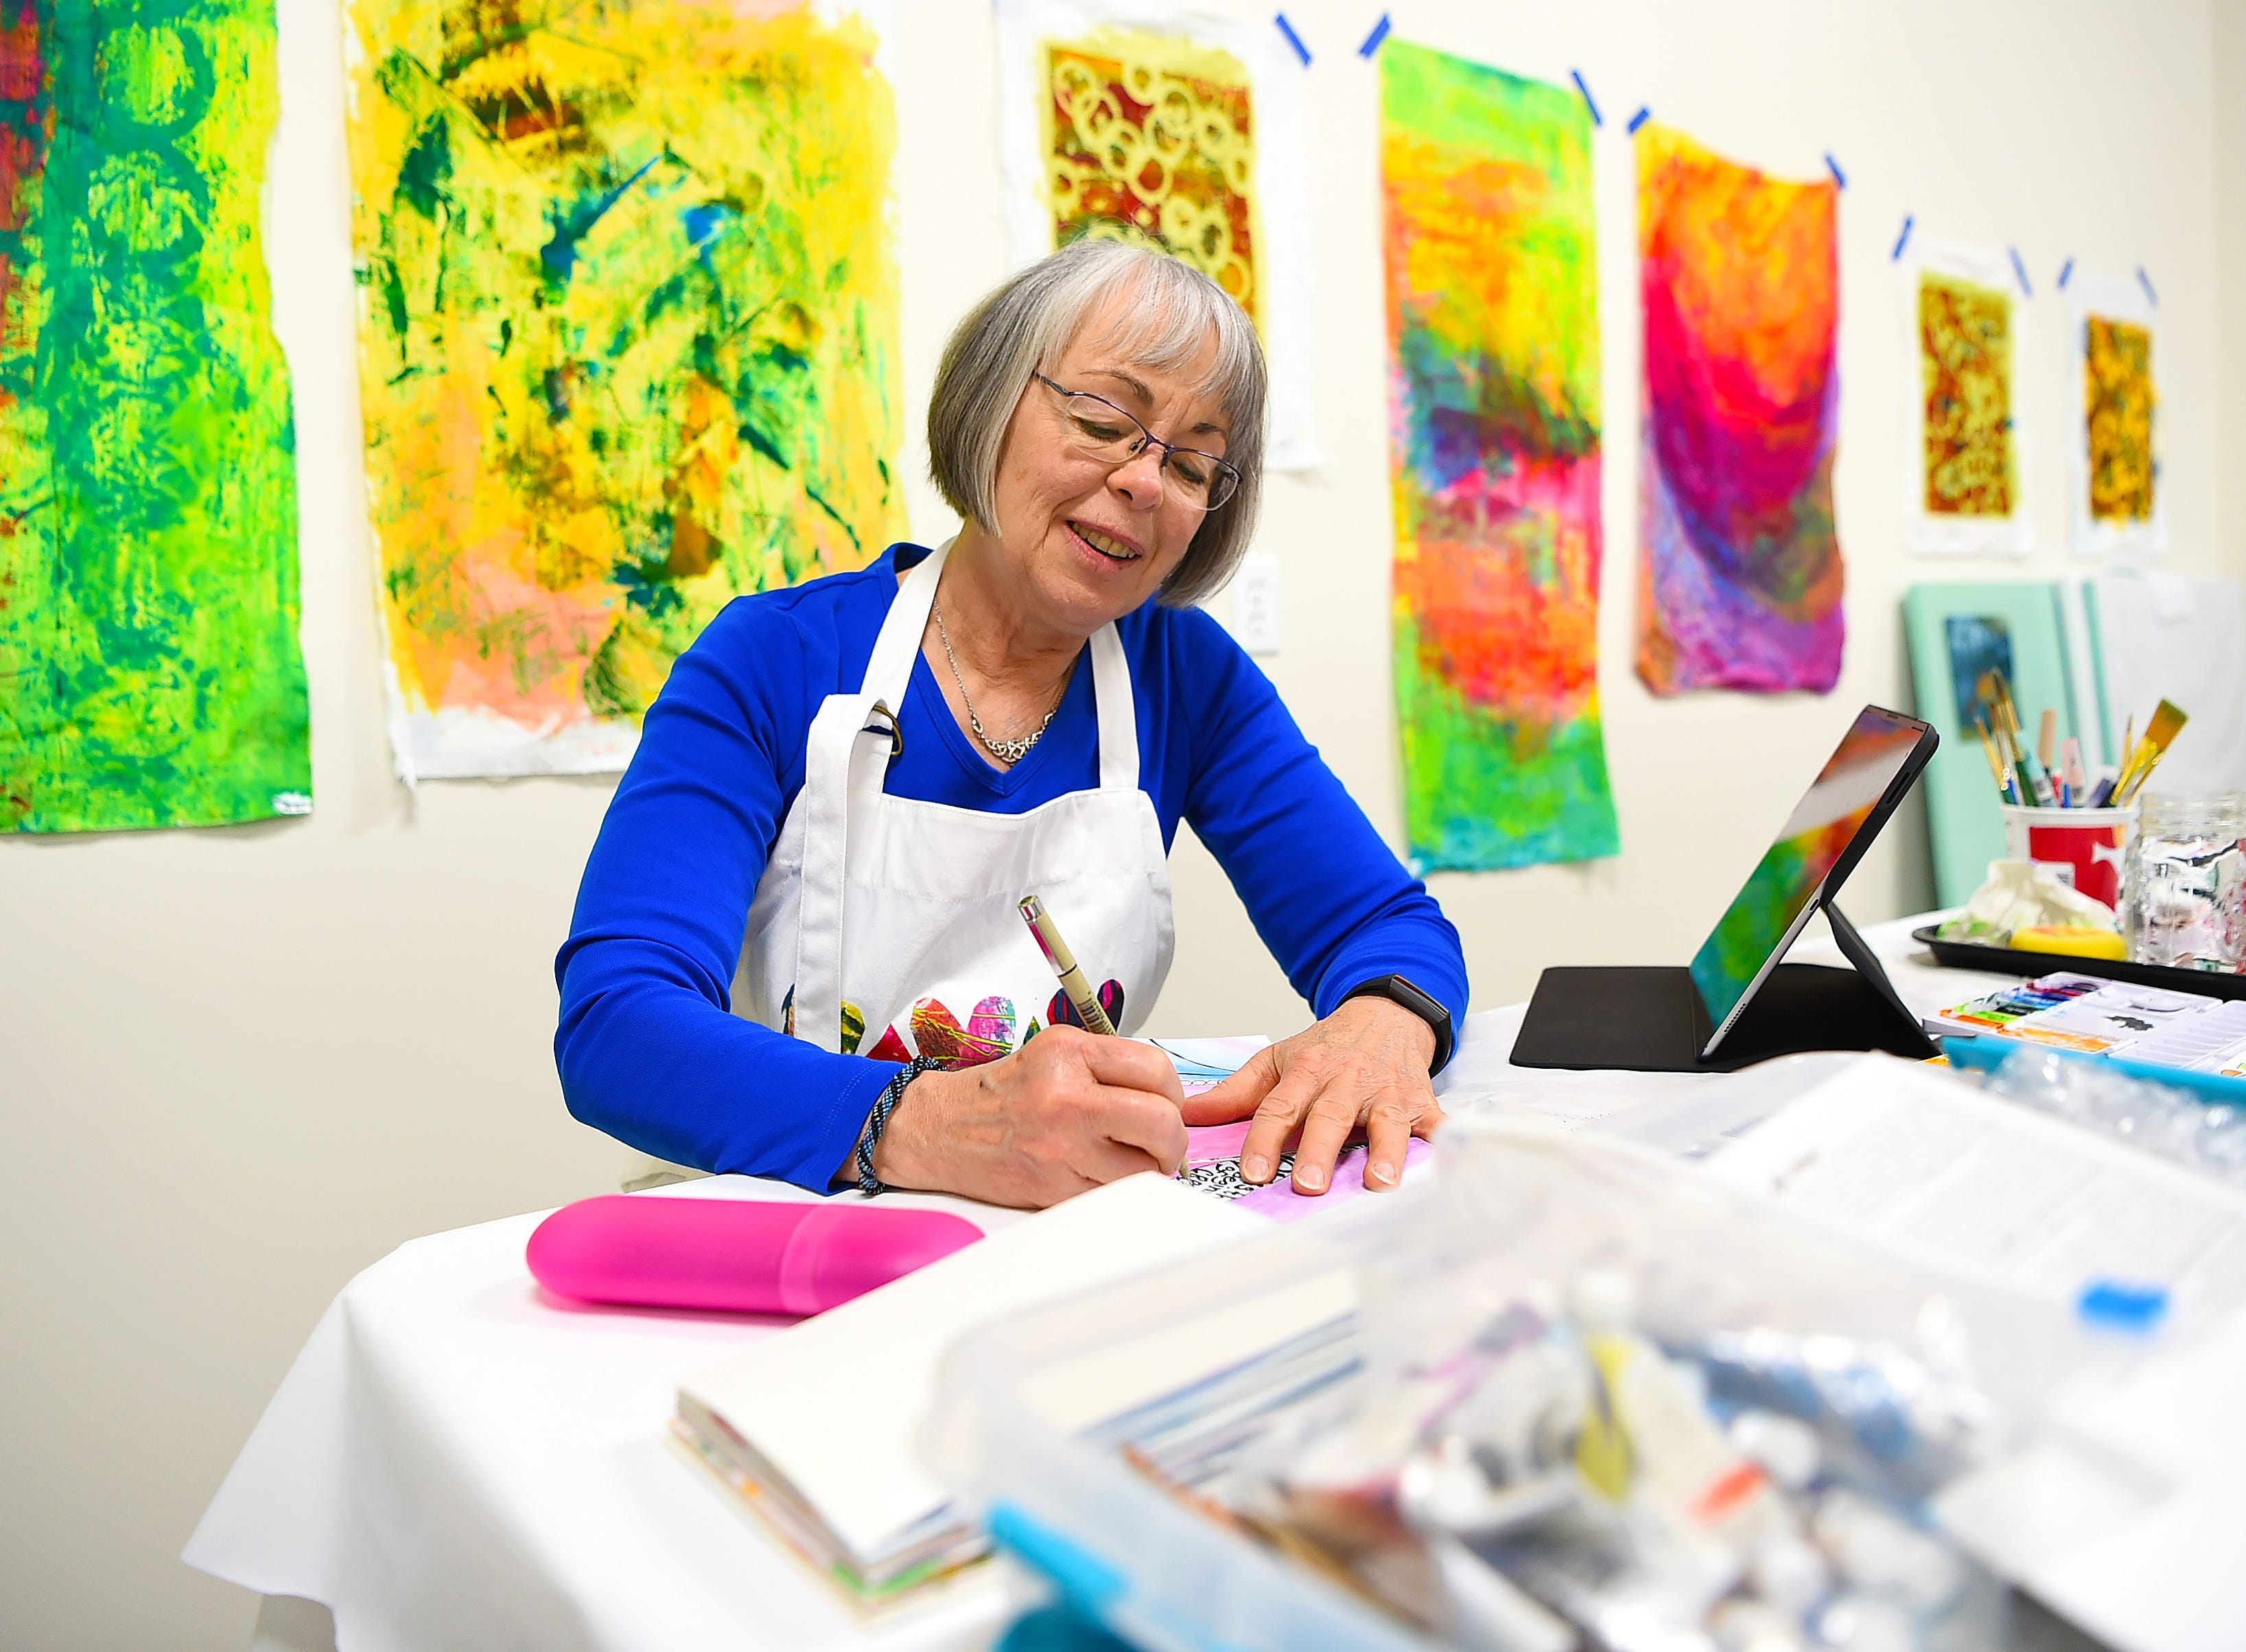 Carol LaBorie at work in her studio, Curiosity Works, which is located in Artist's Alley at South Hill. Once a large industrial space in the South Hill Business Complex on Danby Road, Artist's Alley has recently been transformed into a growing hub of art studios.